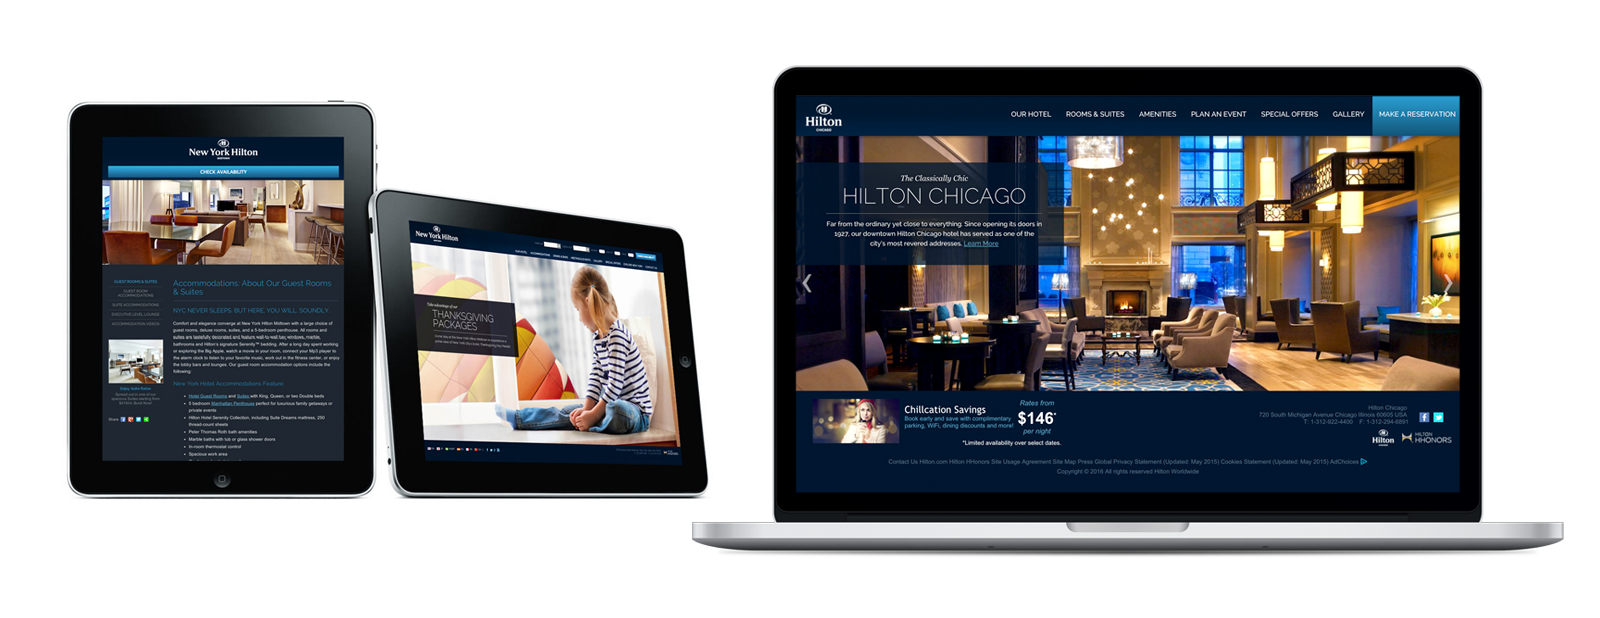 Diego Guevara - Hilton Hotels Identity - Chicago and NY hotels